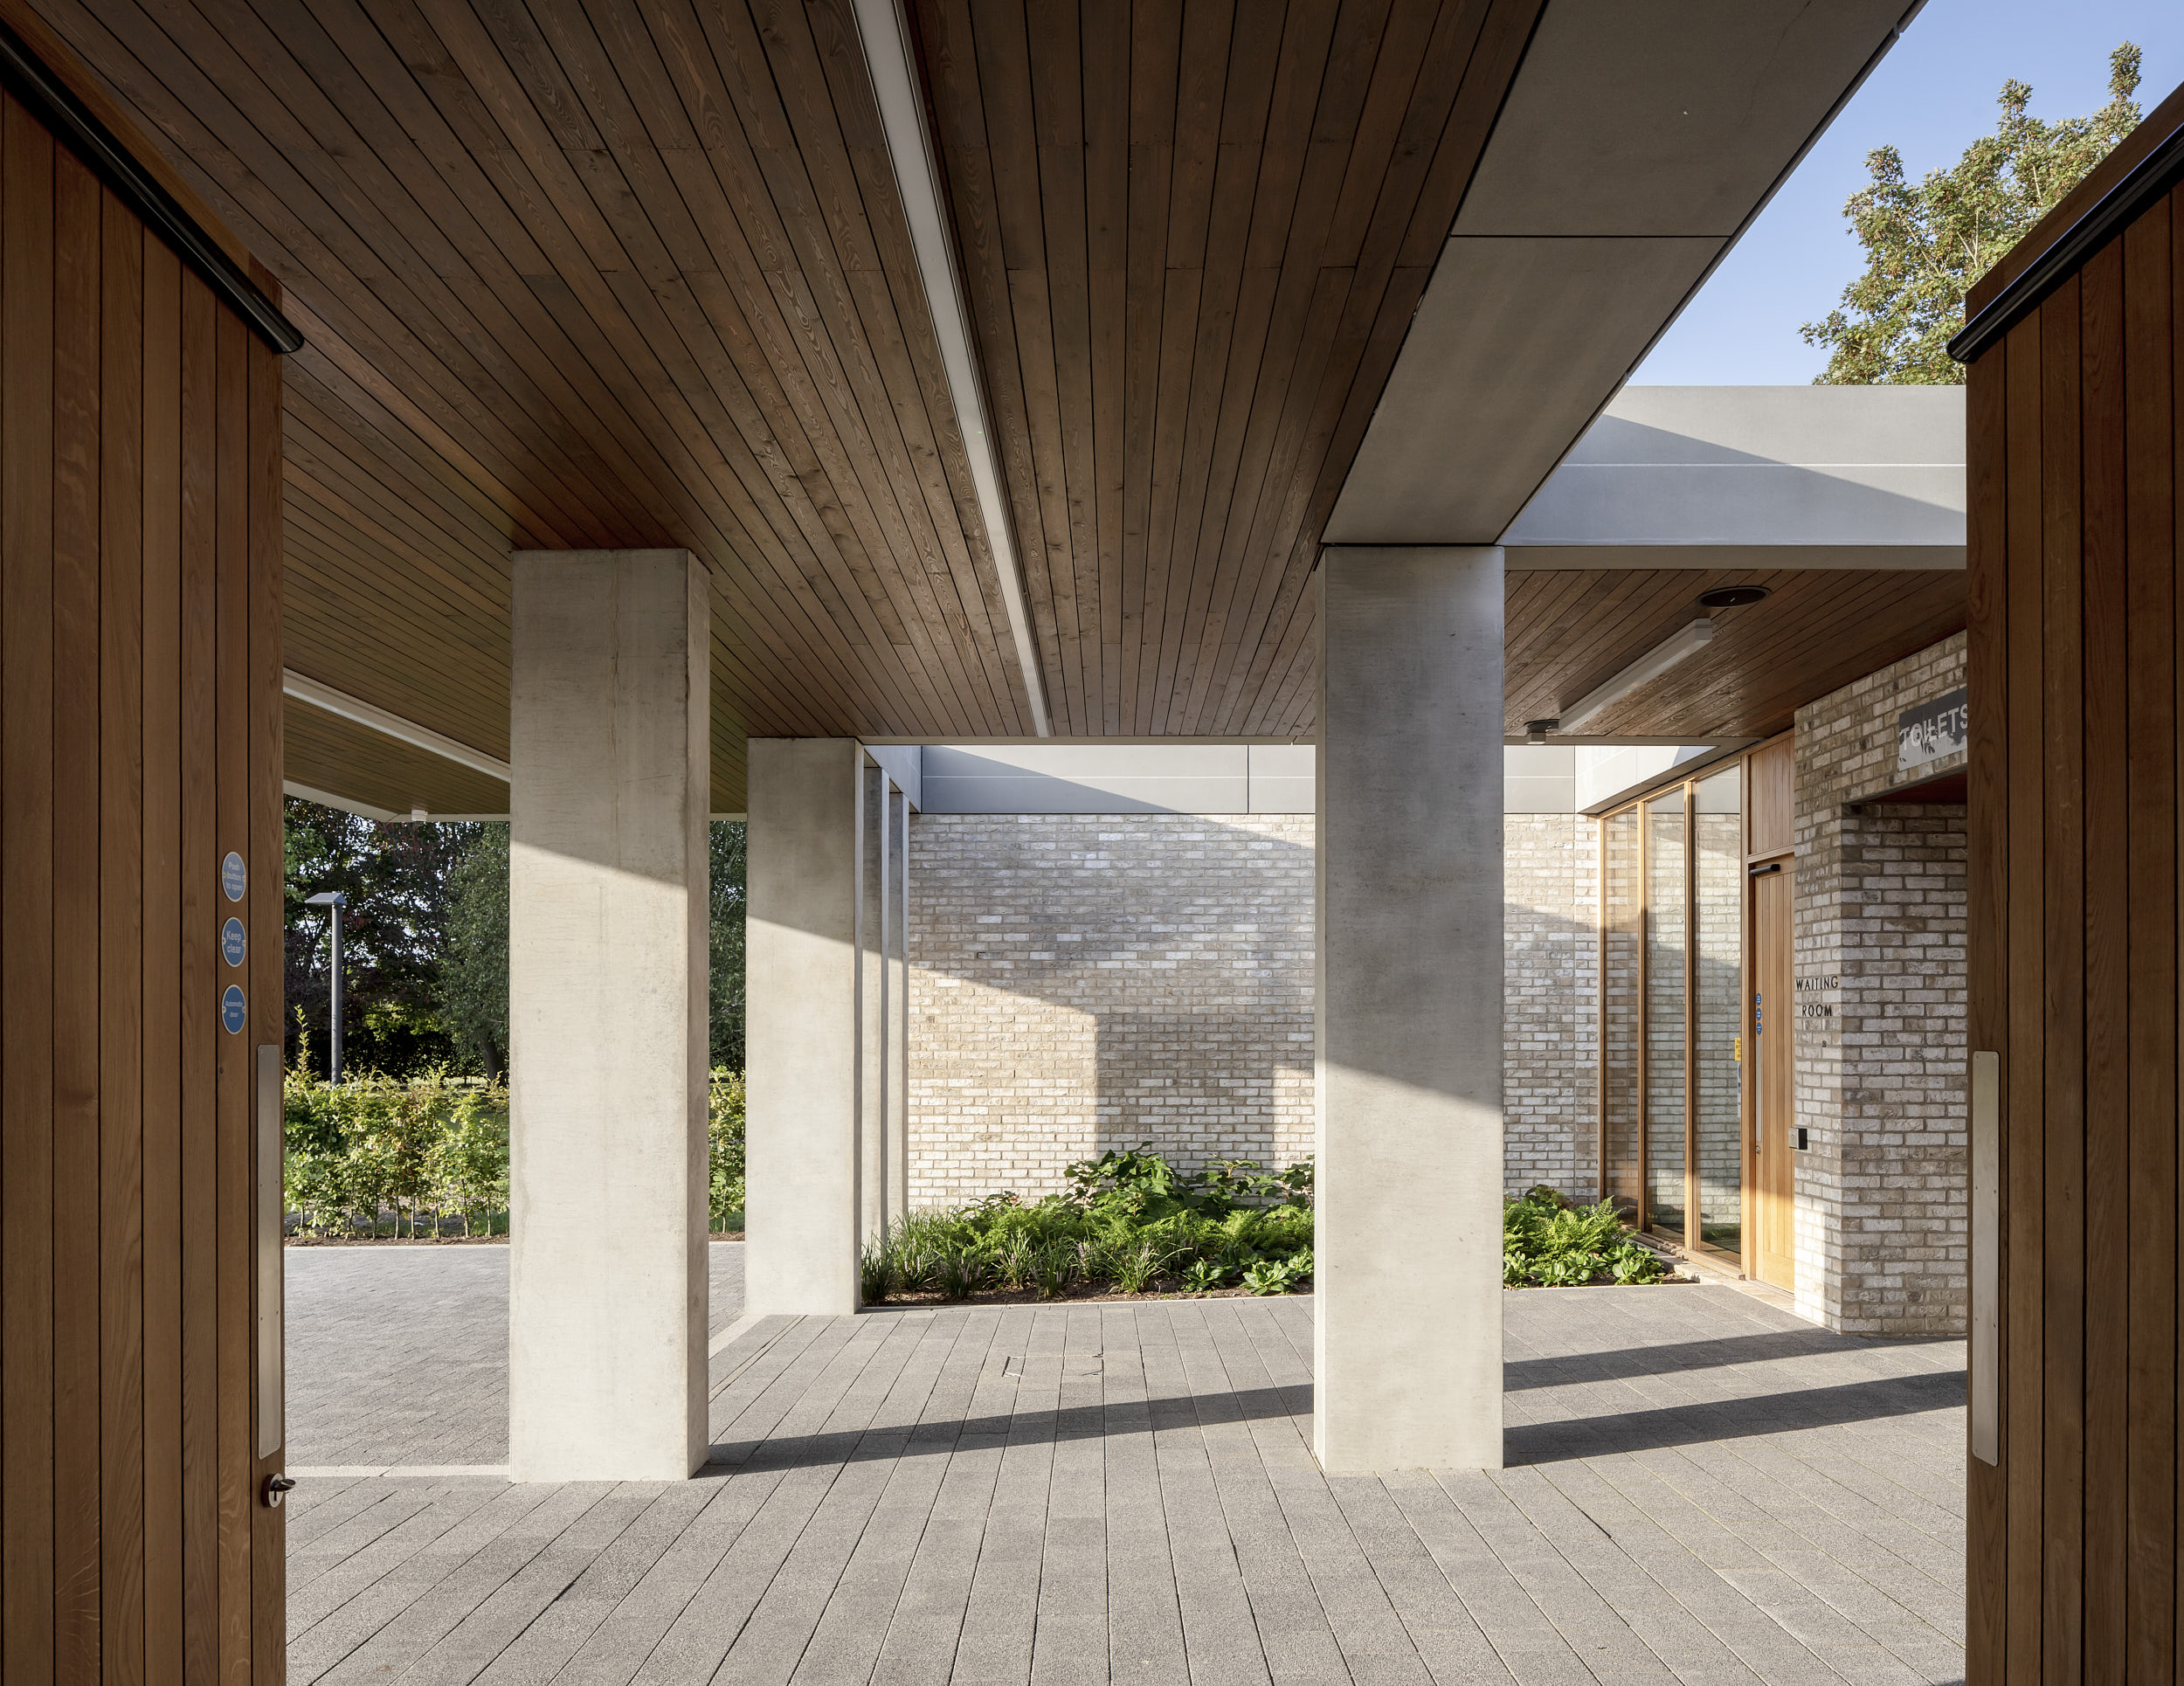 Entrance area with timber soffit and beautful pre-cast structural elements.